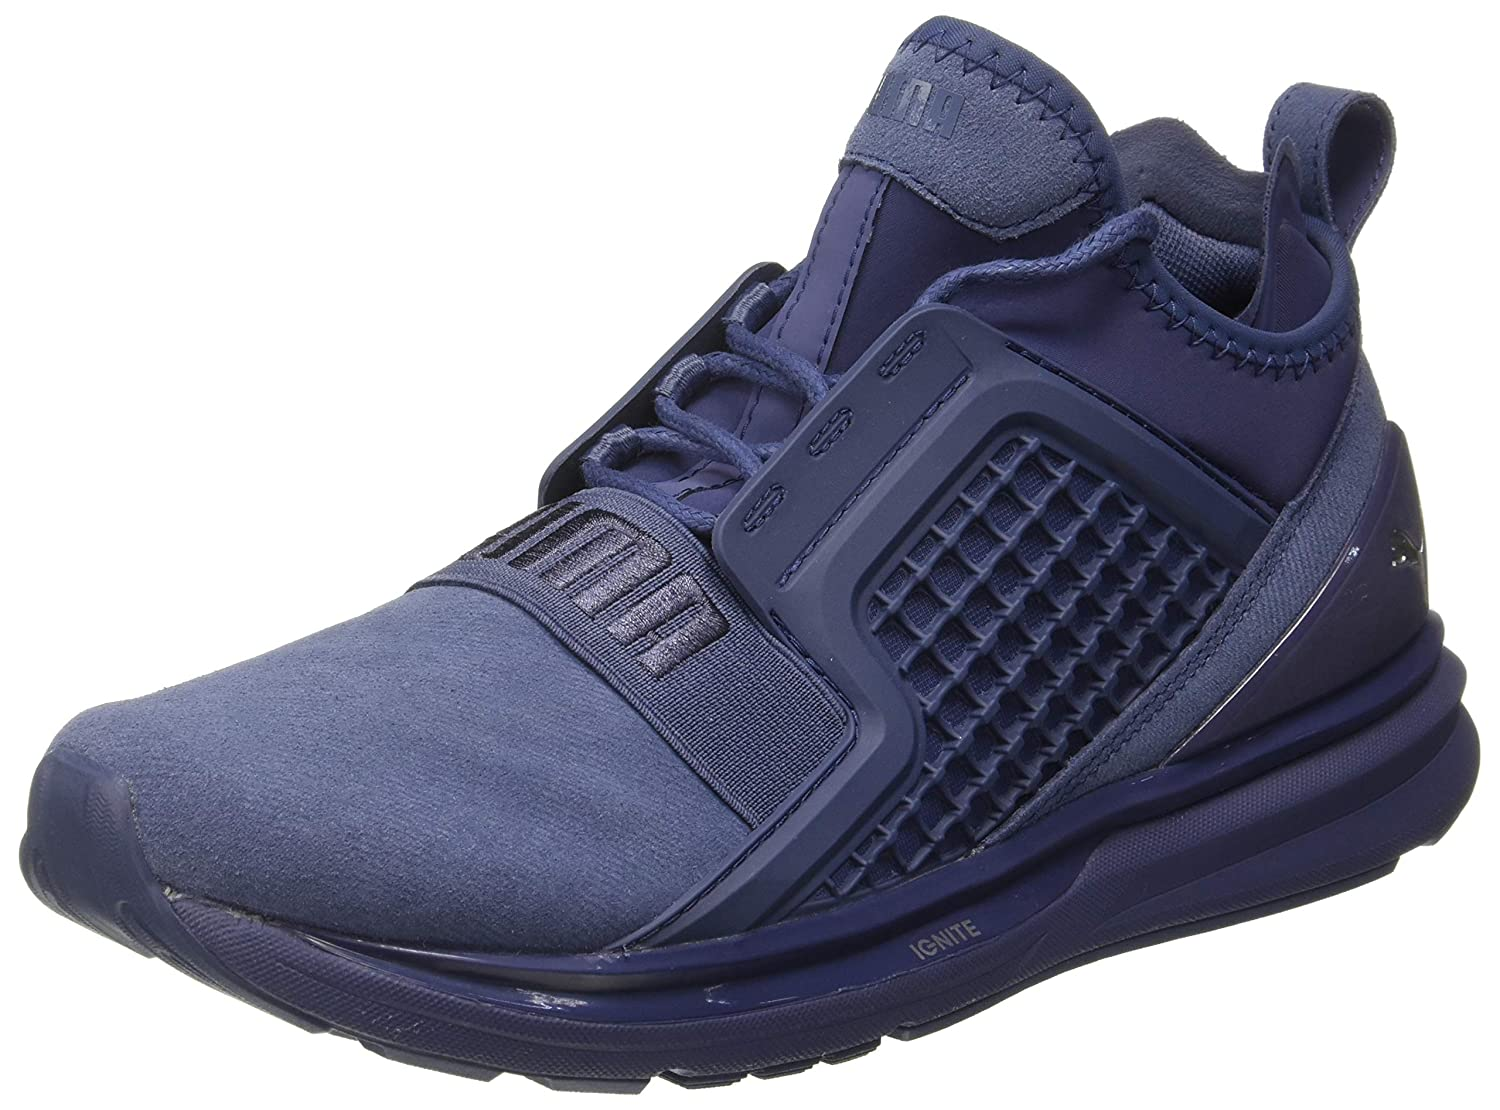 71871abf0f7 Puma Men s Ignite Limitless Brushed Suede Running Shoes  Buy Online at Low  Prices in India - Amazon.in